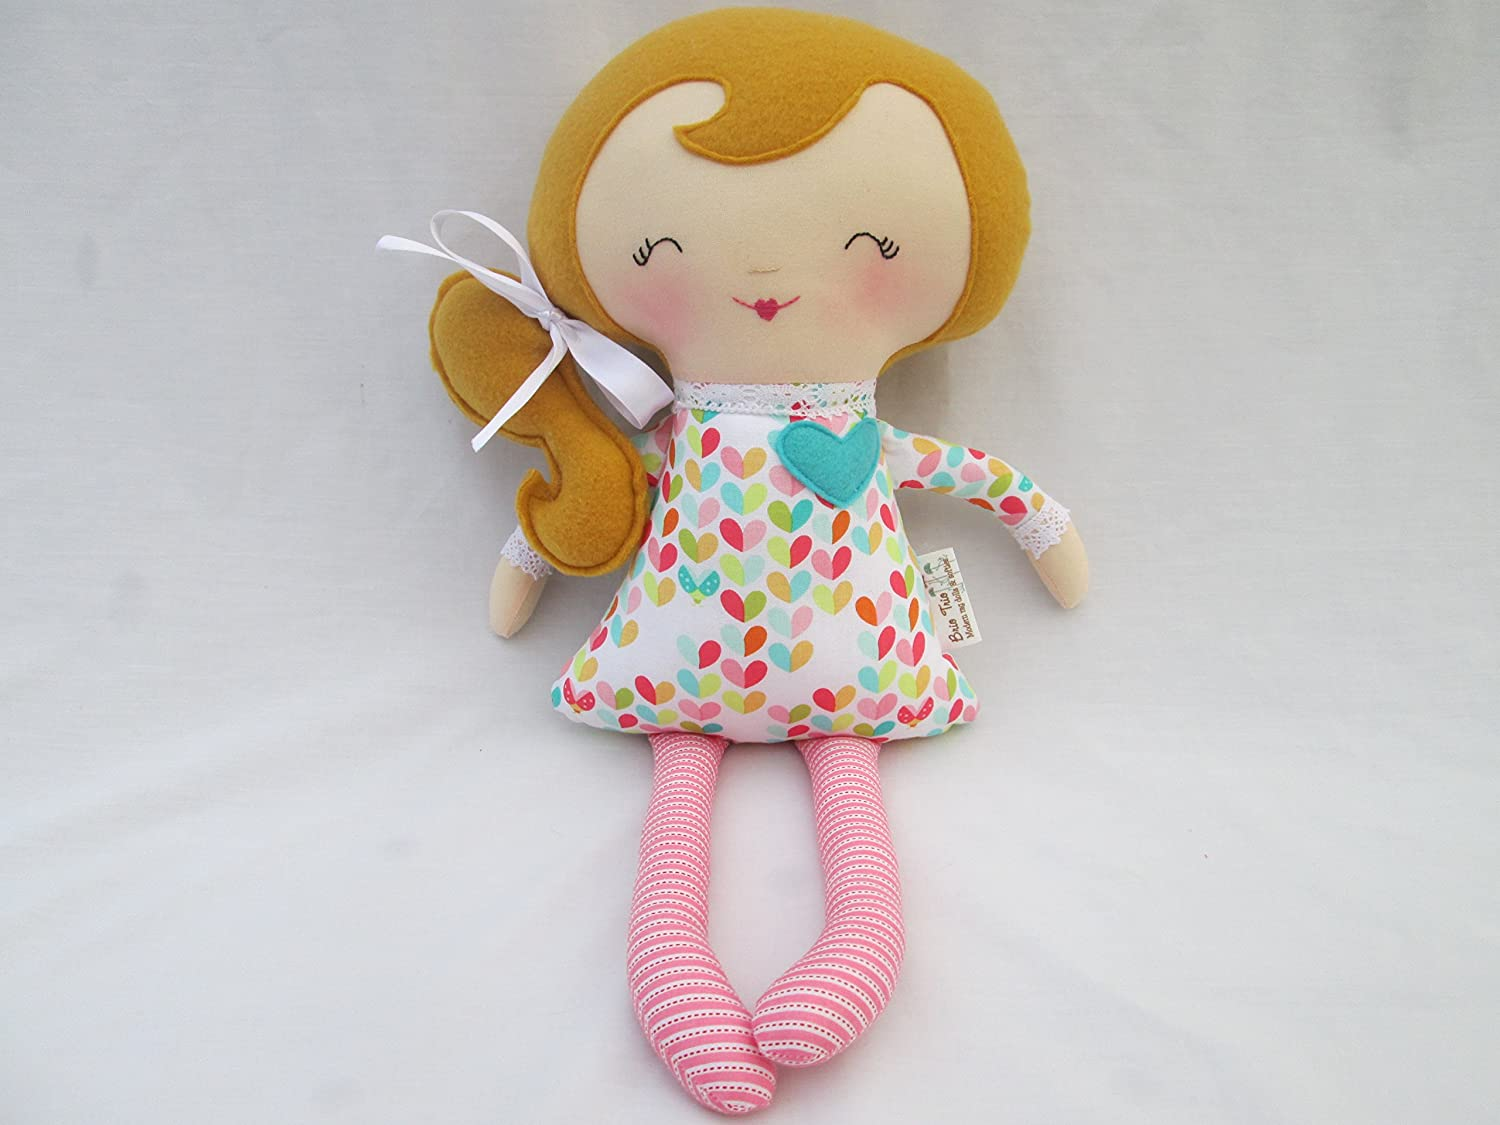 Blonde Soft Doll with Colorful Hearts outfit and pink striped tights